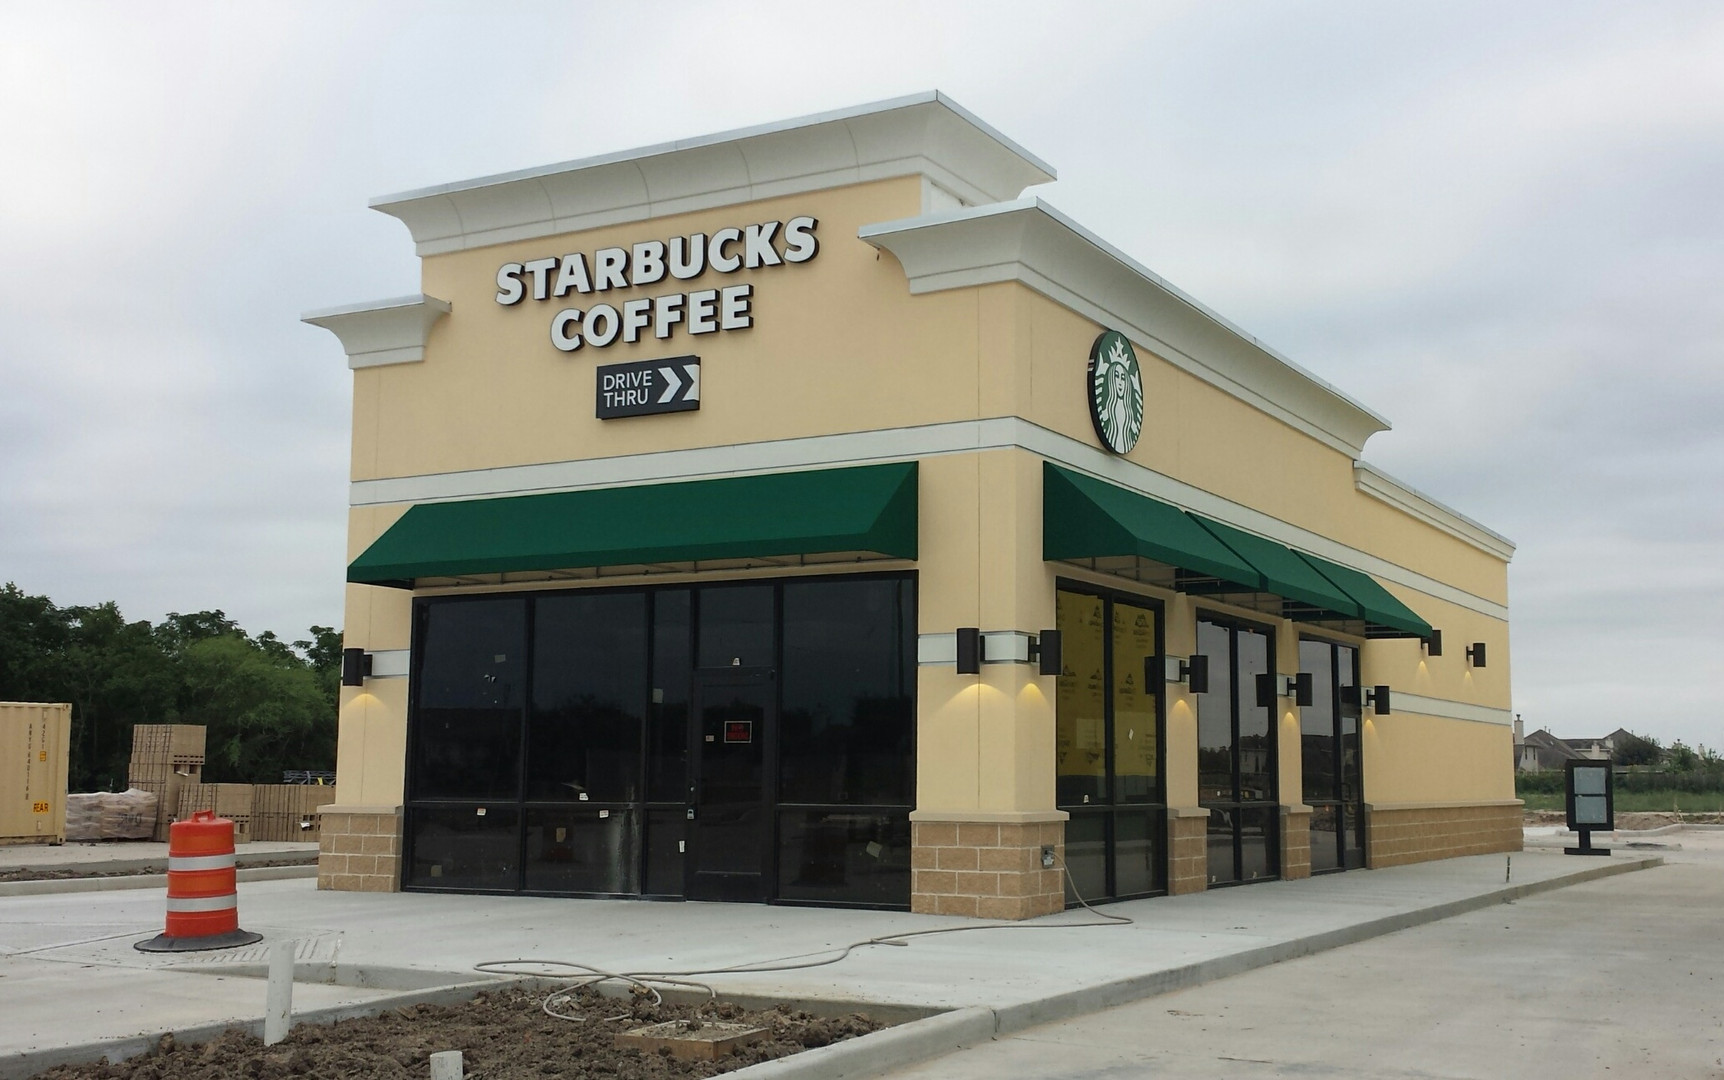 starbucks-sunbrella-forest-green-awnings